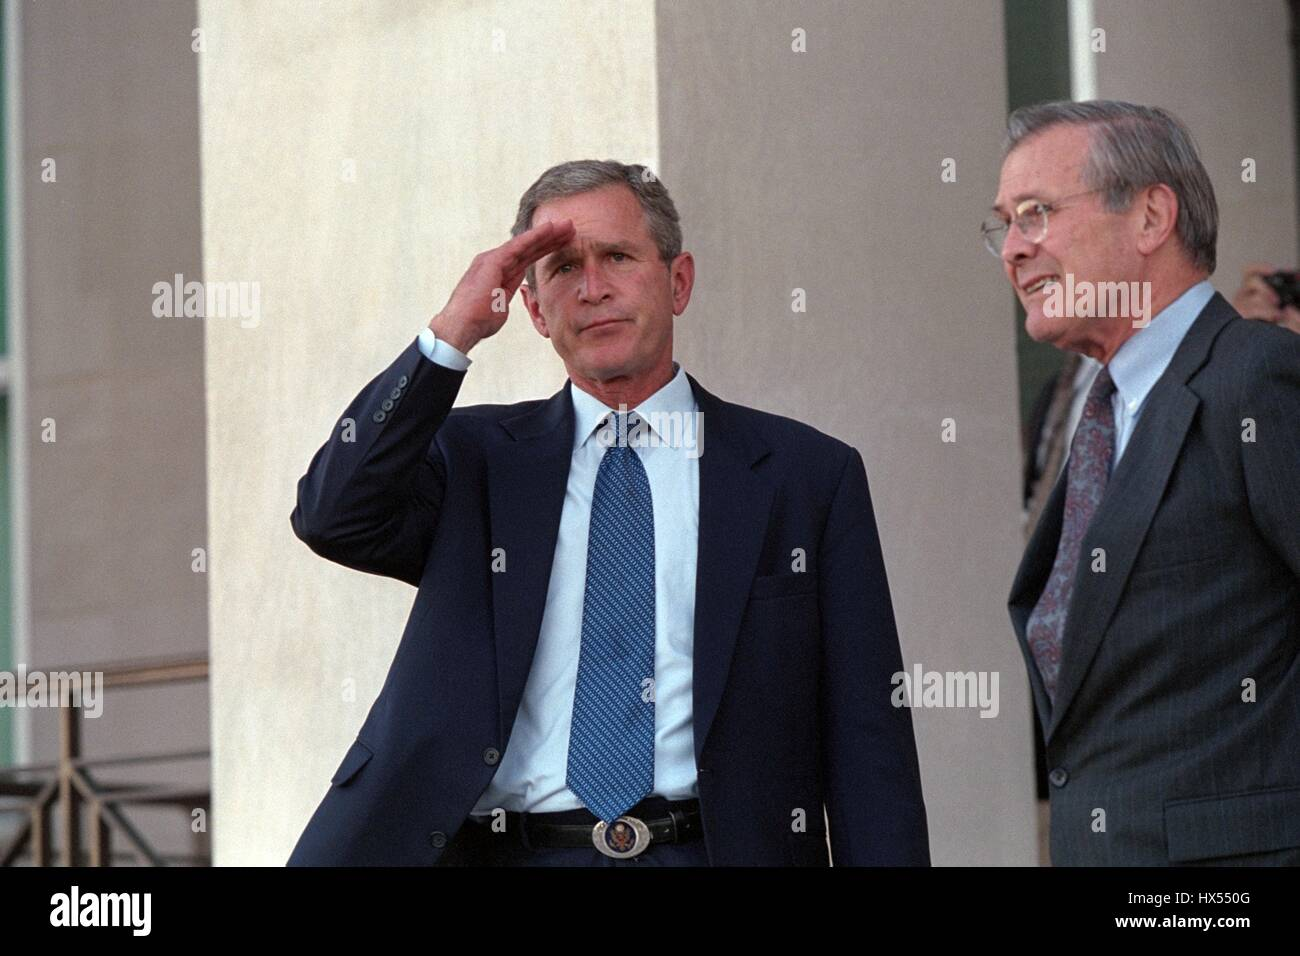 United States President George W. Bush salutes as he exits the Pentagon with Secretary of Defense Donald Rumsfeld - Stock Image